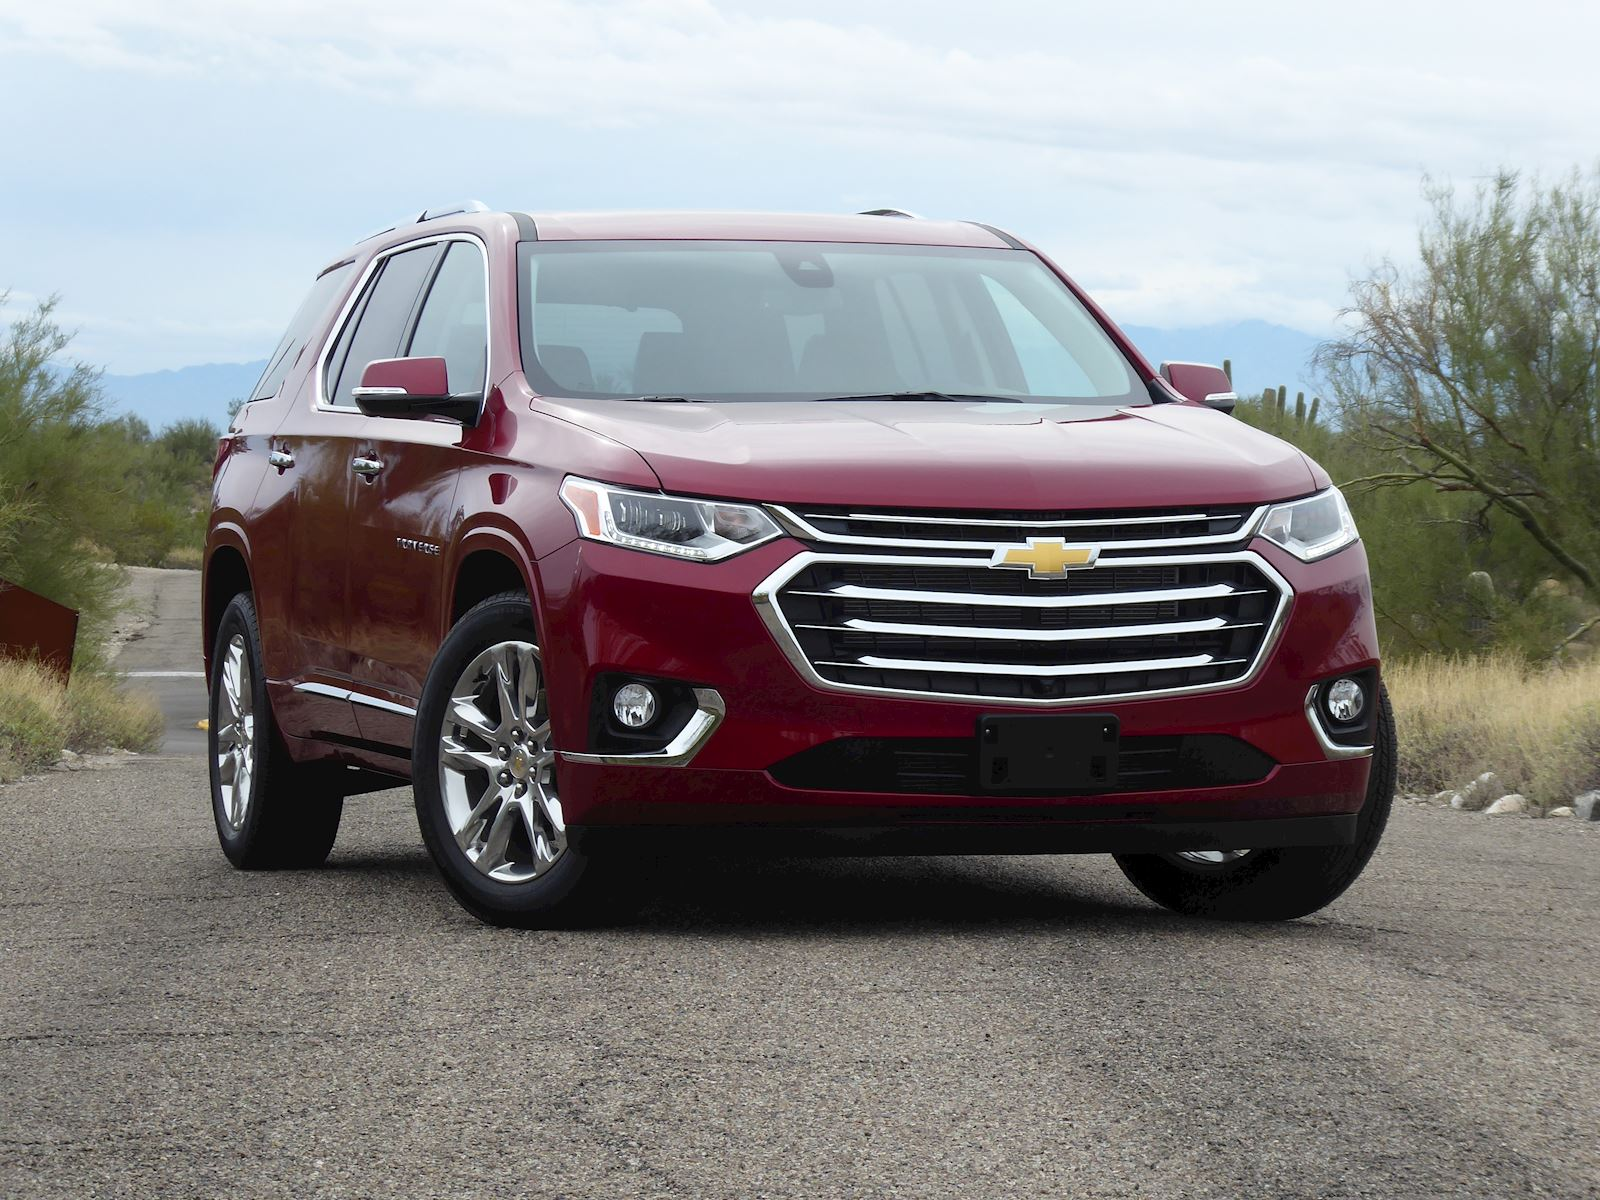 2020 Chevrolet Traverse front view